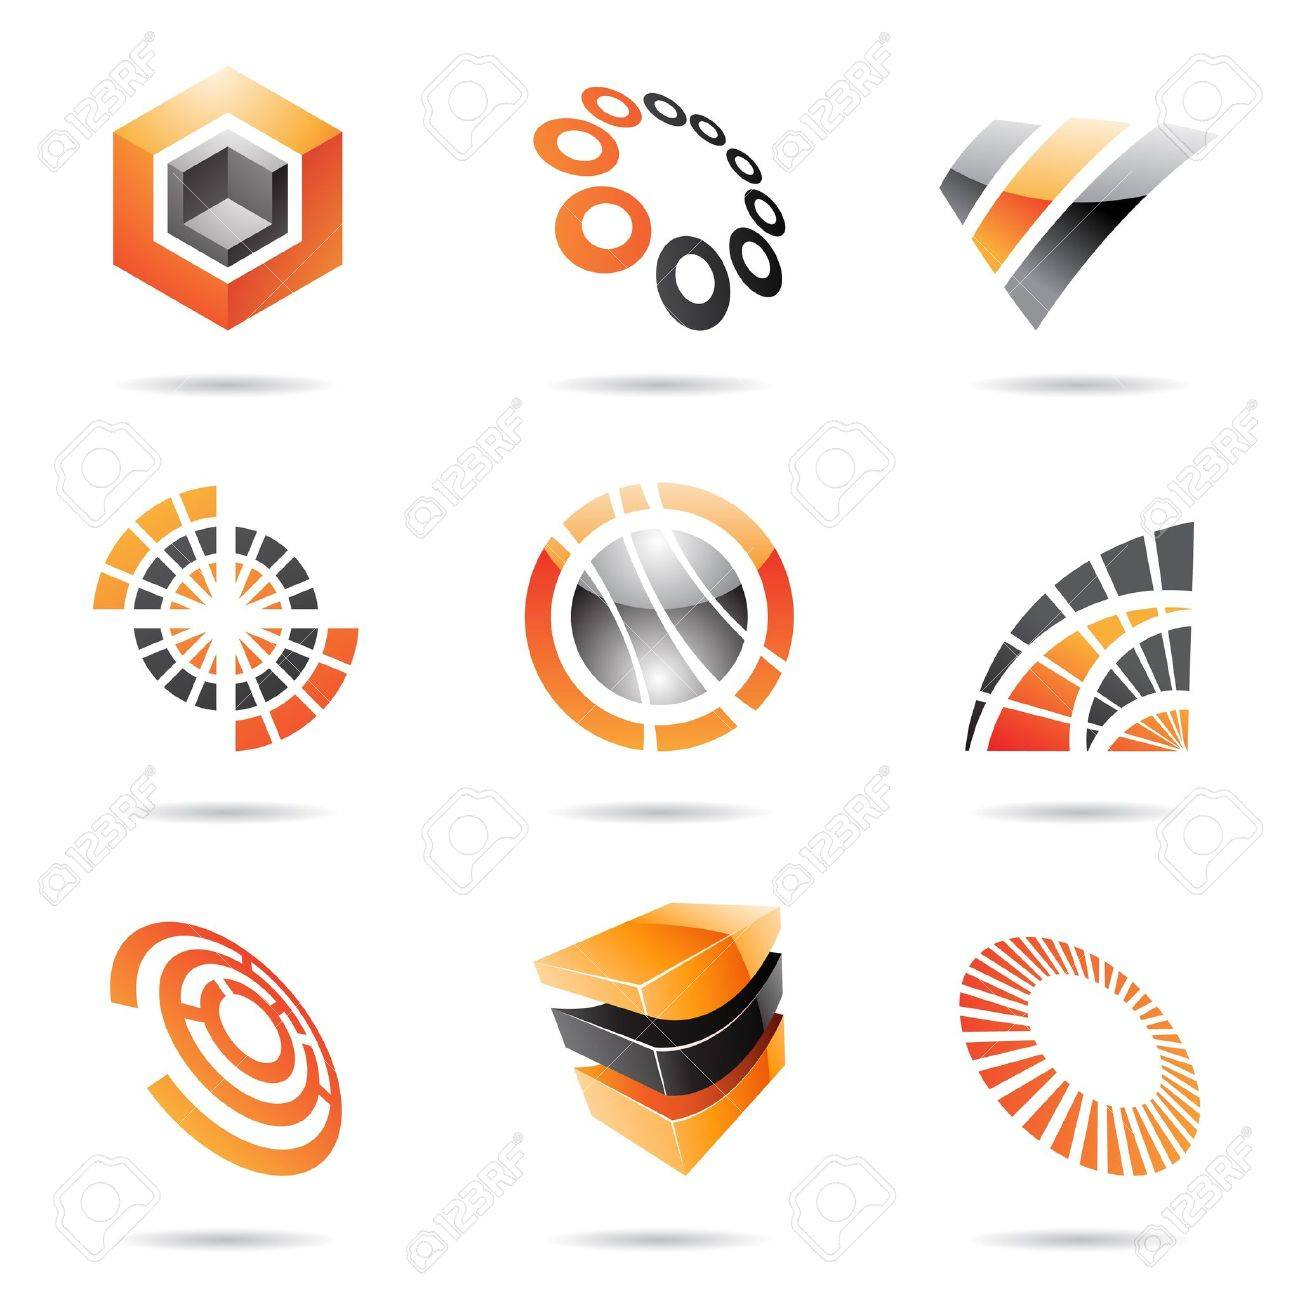 Various orange abstract icons isolated on a white background Stock Vector - 14993152